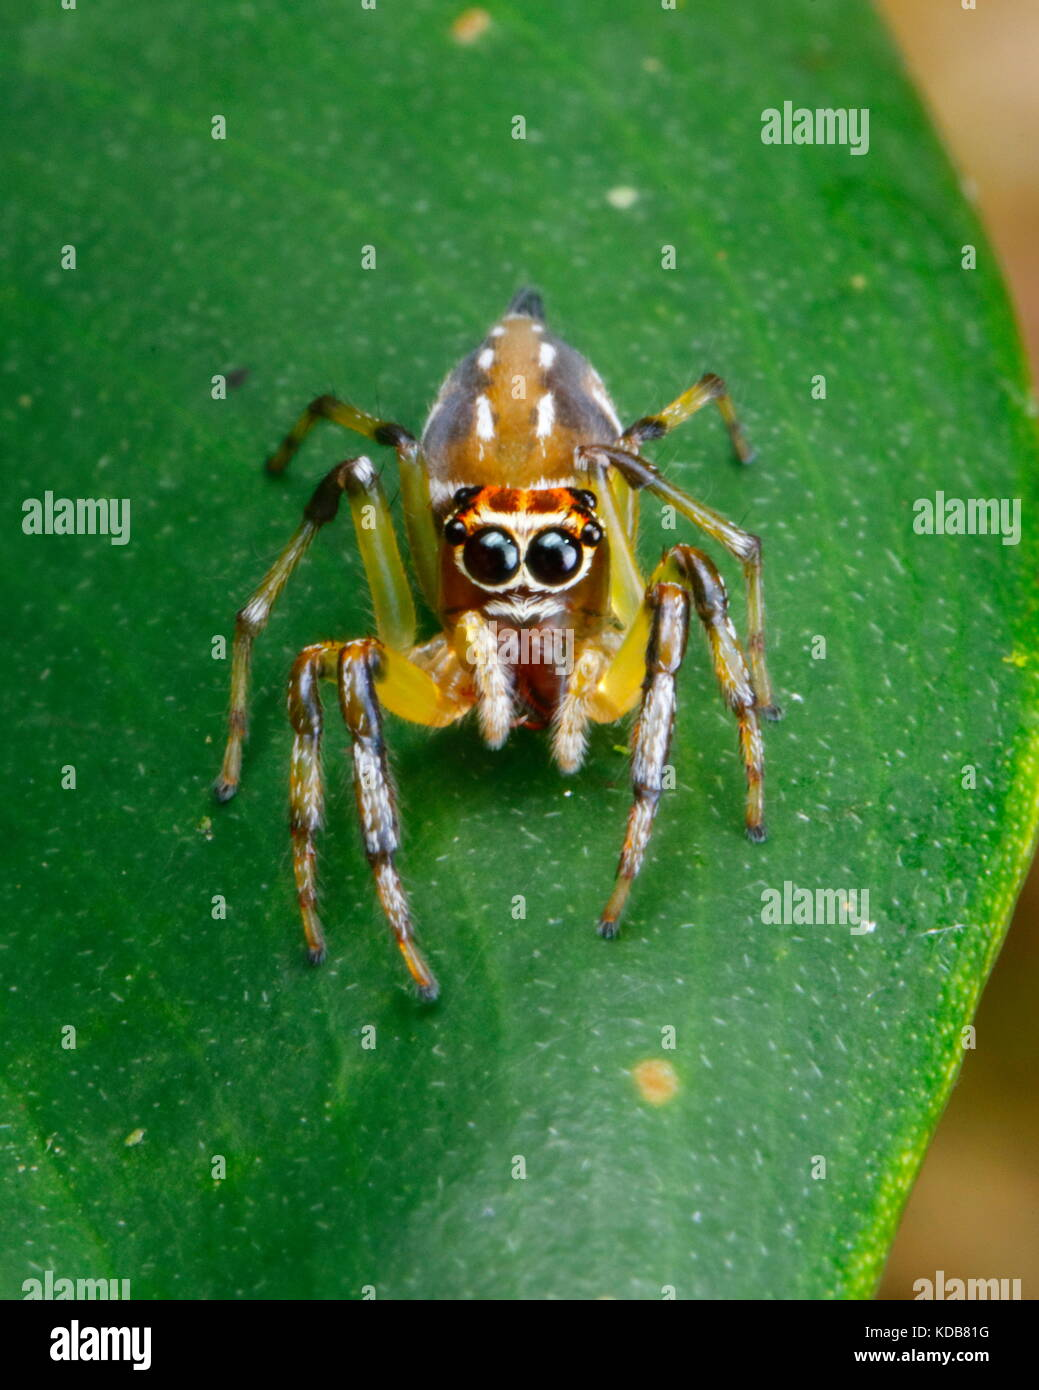 A jumping spider, Tropische Springspinne, crawling on a leaf. - Stock Image